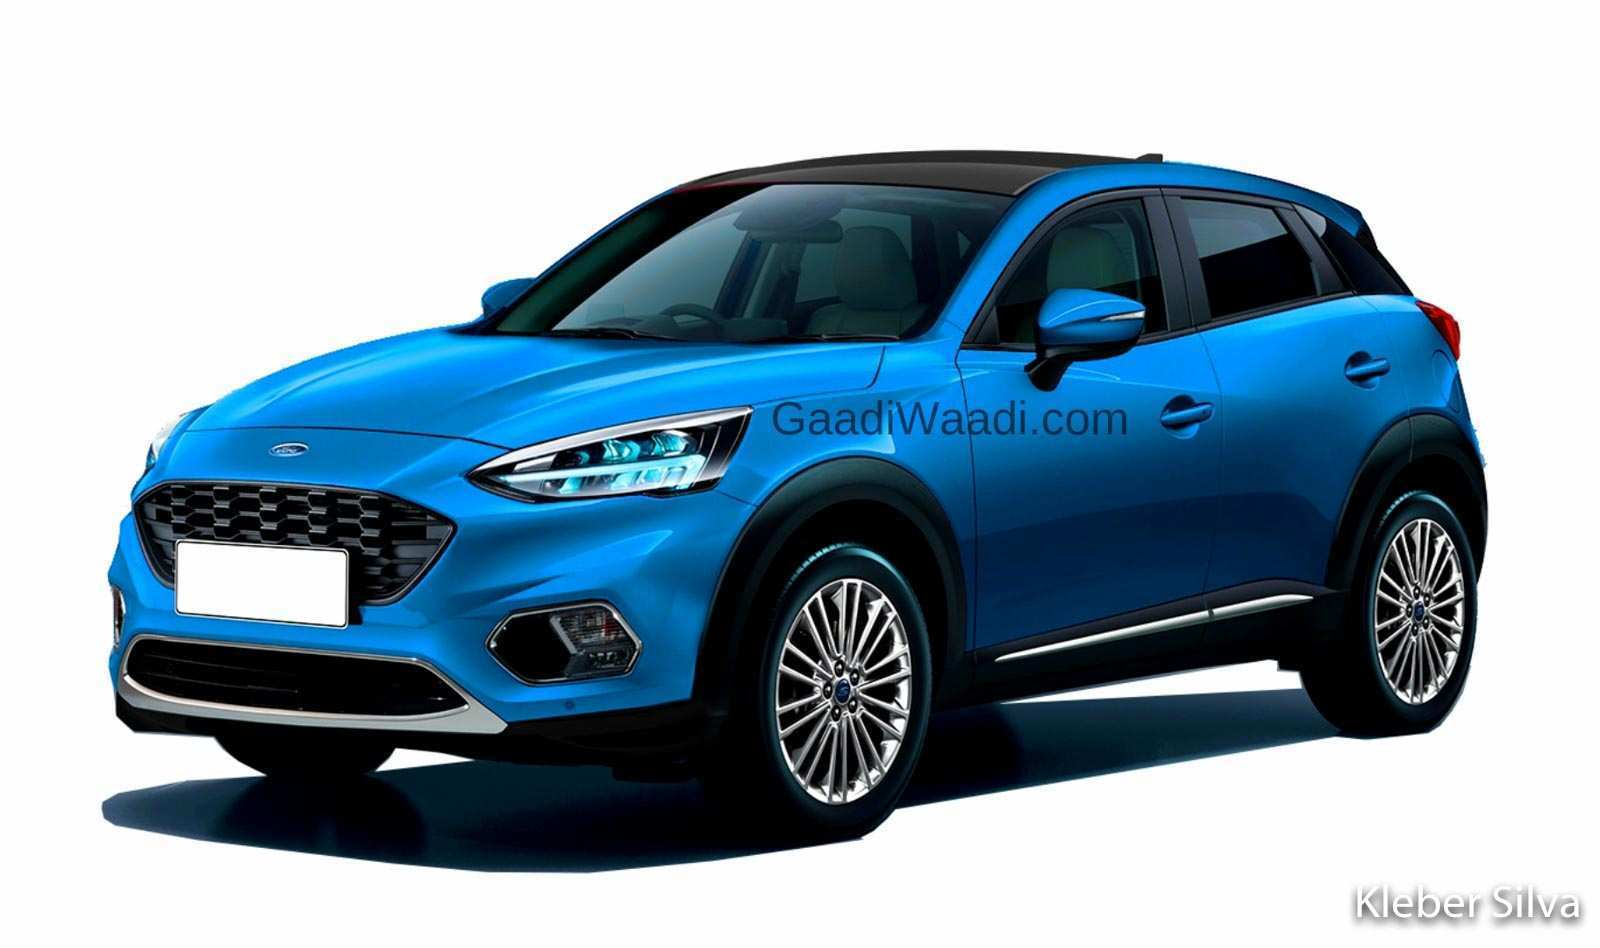 76 New 2020 Ford Ecosport Price for 2020 Ford Ecosport